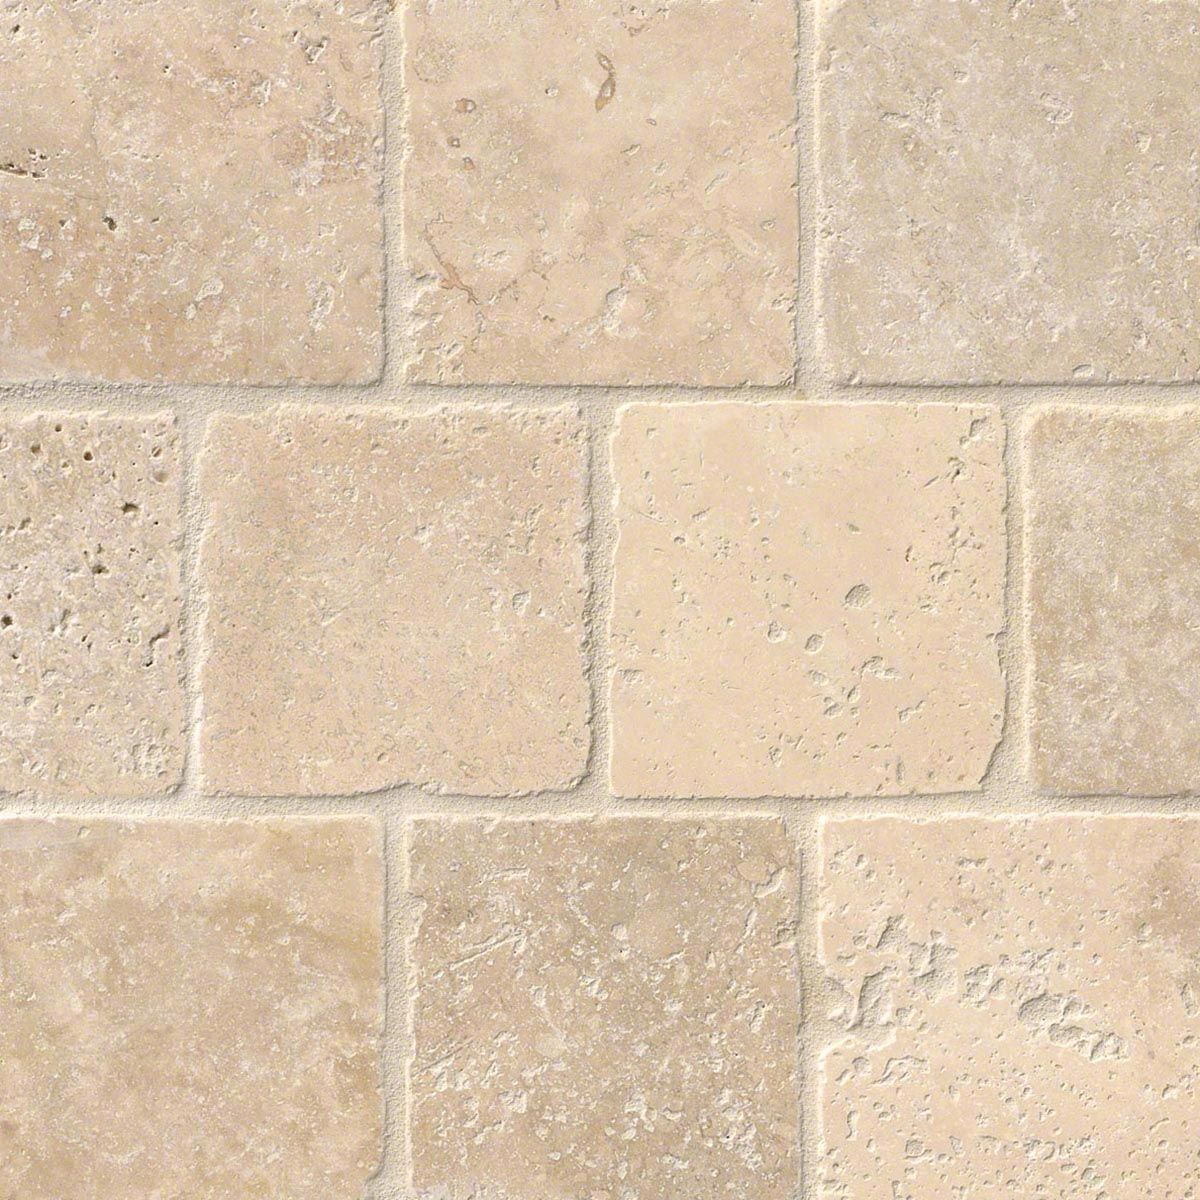 Tuscany Classic 4x4 Tumbled Tile Stone Backsplash Backsplash Tiles